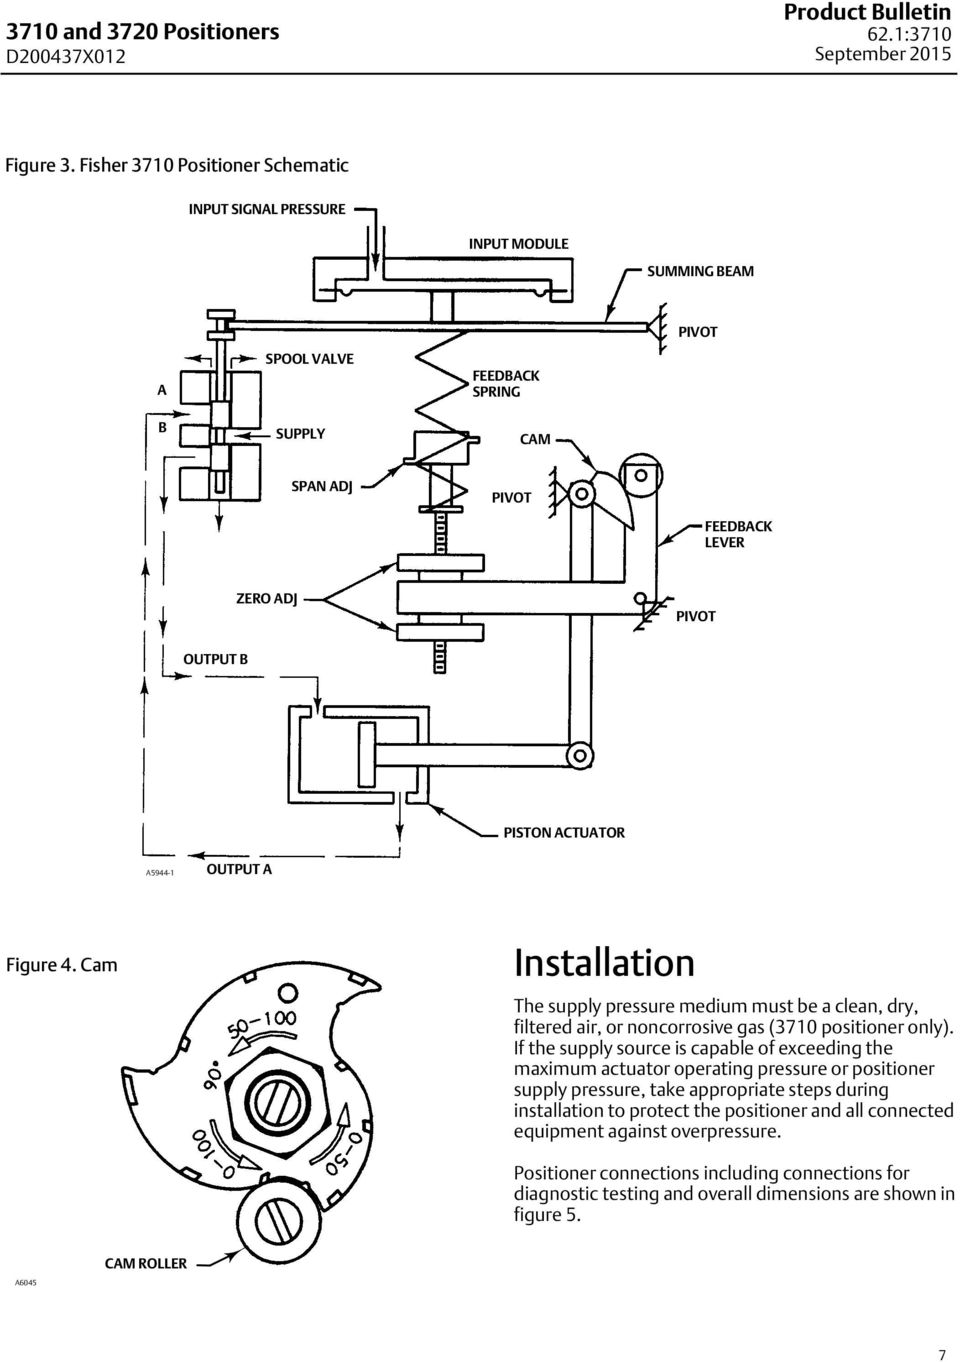 Fisher 3710 And 3720 Positioners 3722 Electro Pneumatic Auto Rod Controls Wiring Diagram Actuator A5944 1 Output A Figure 4 Cam Installation The Supply Pressure Medium Must